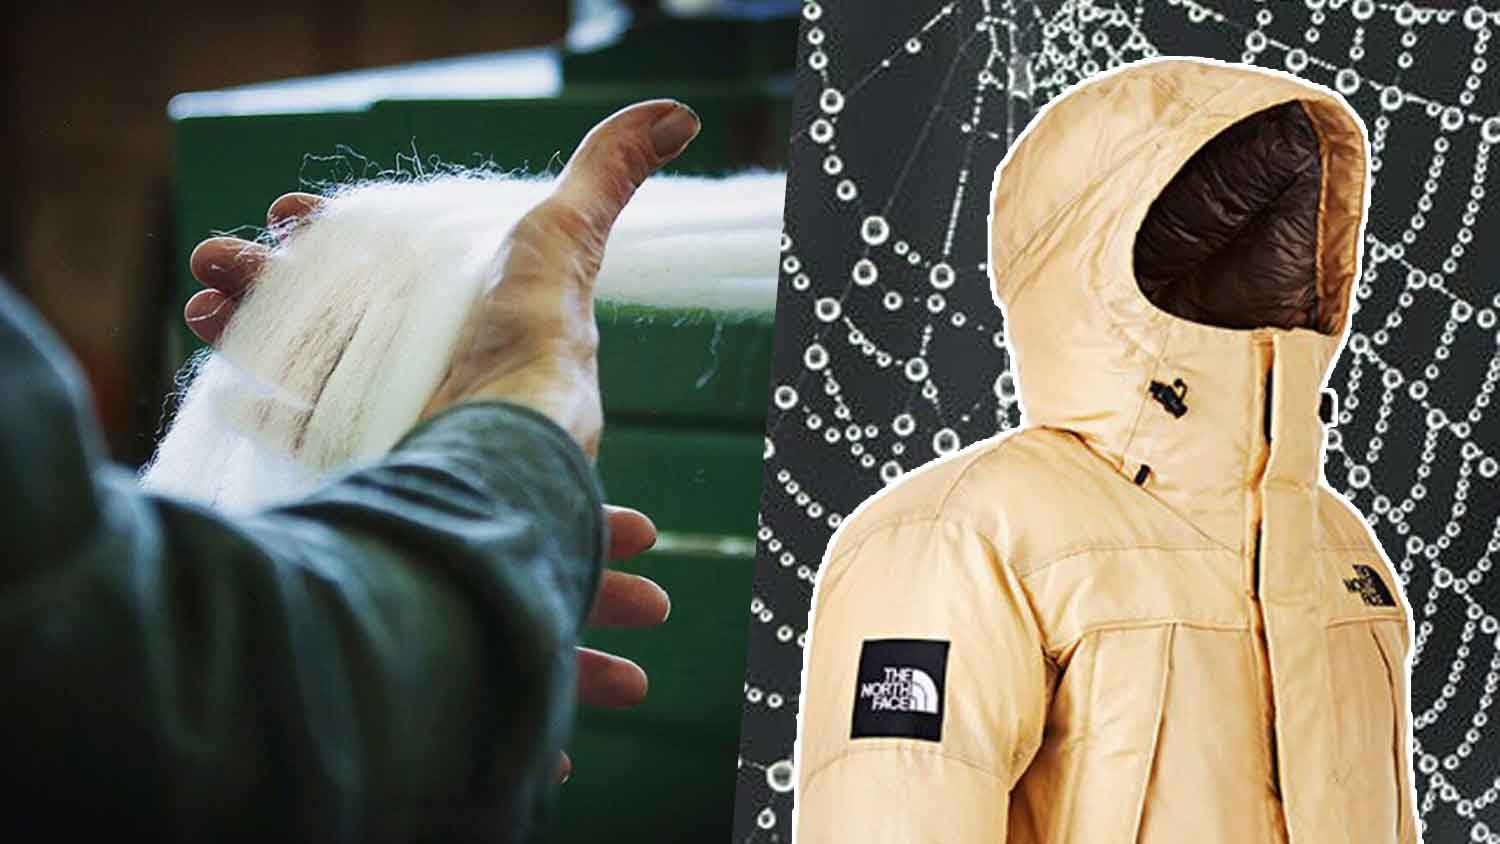 Patagonia and North Face Jackets Made With Vegan Spider Silk